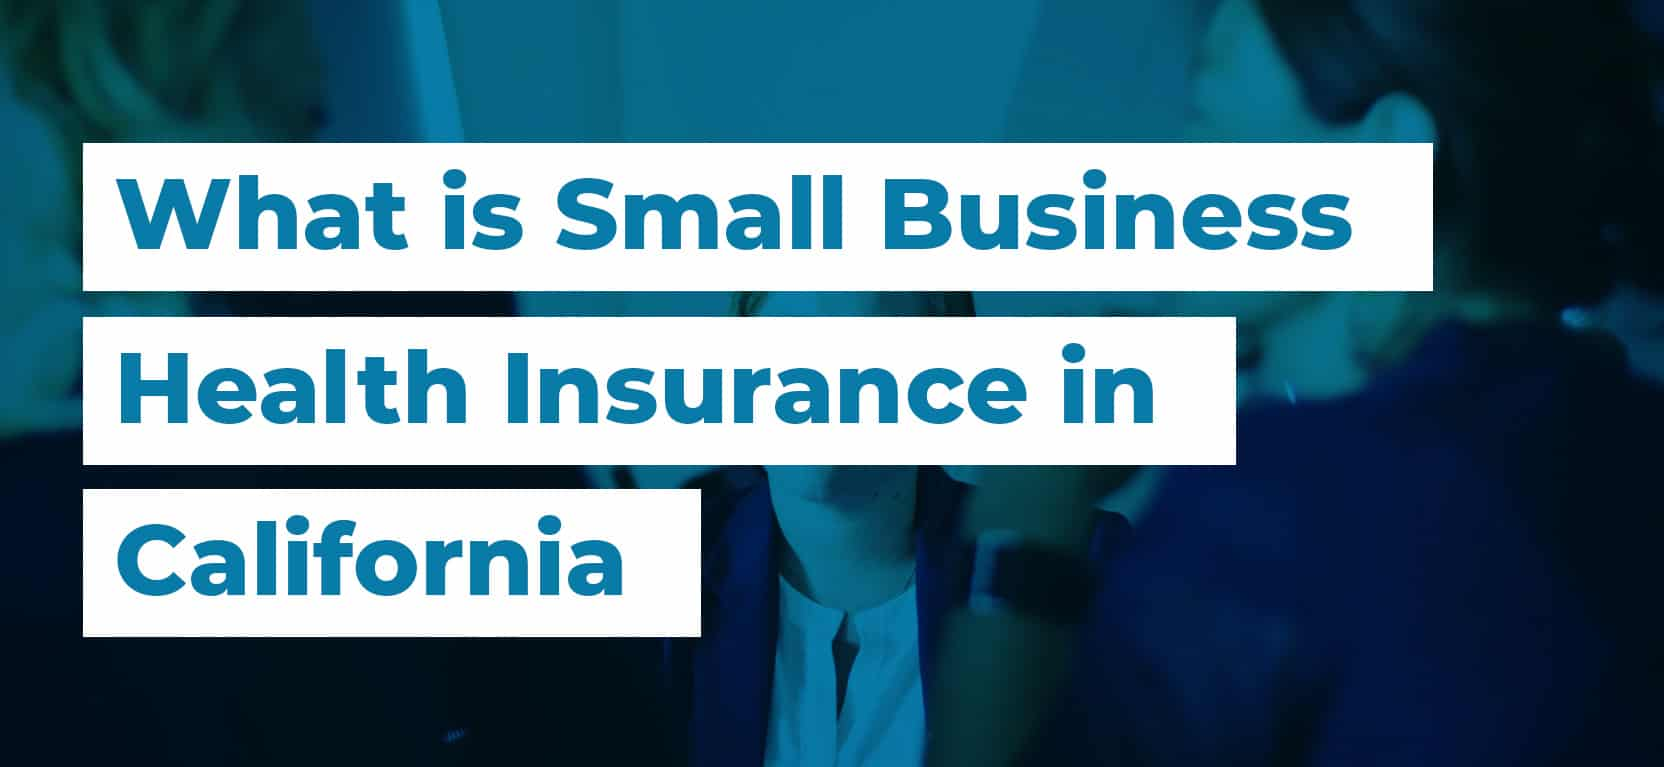 50 What is Small Business Health Insurance in California2